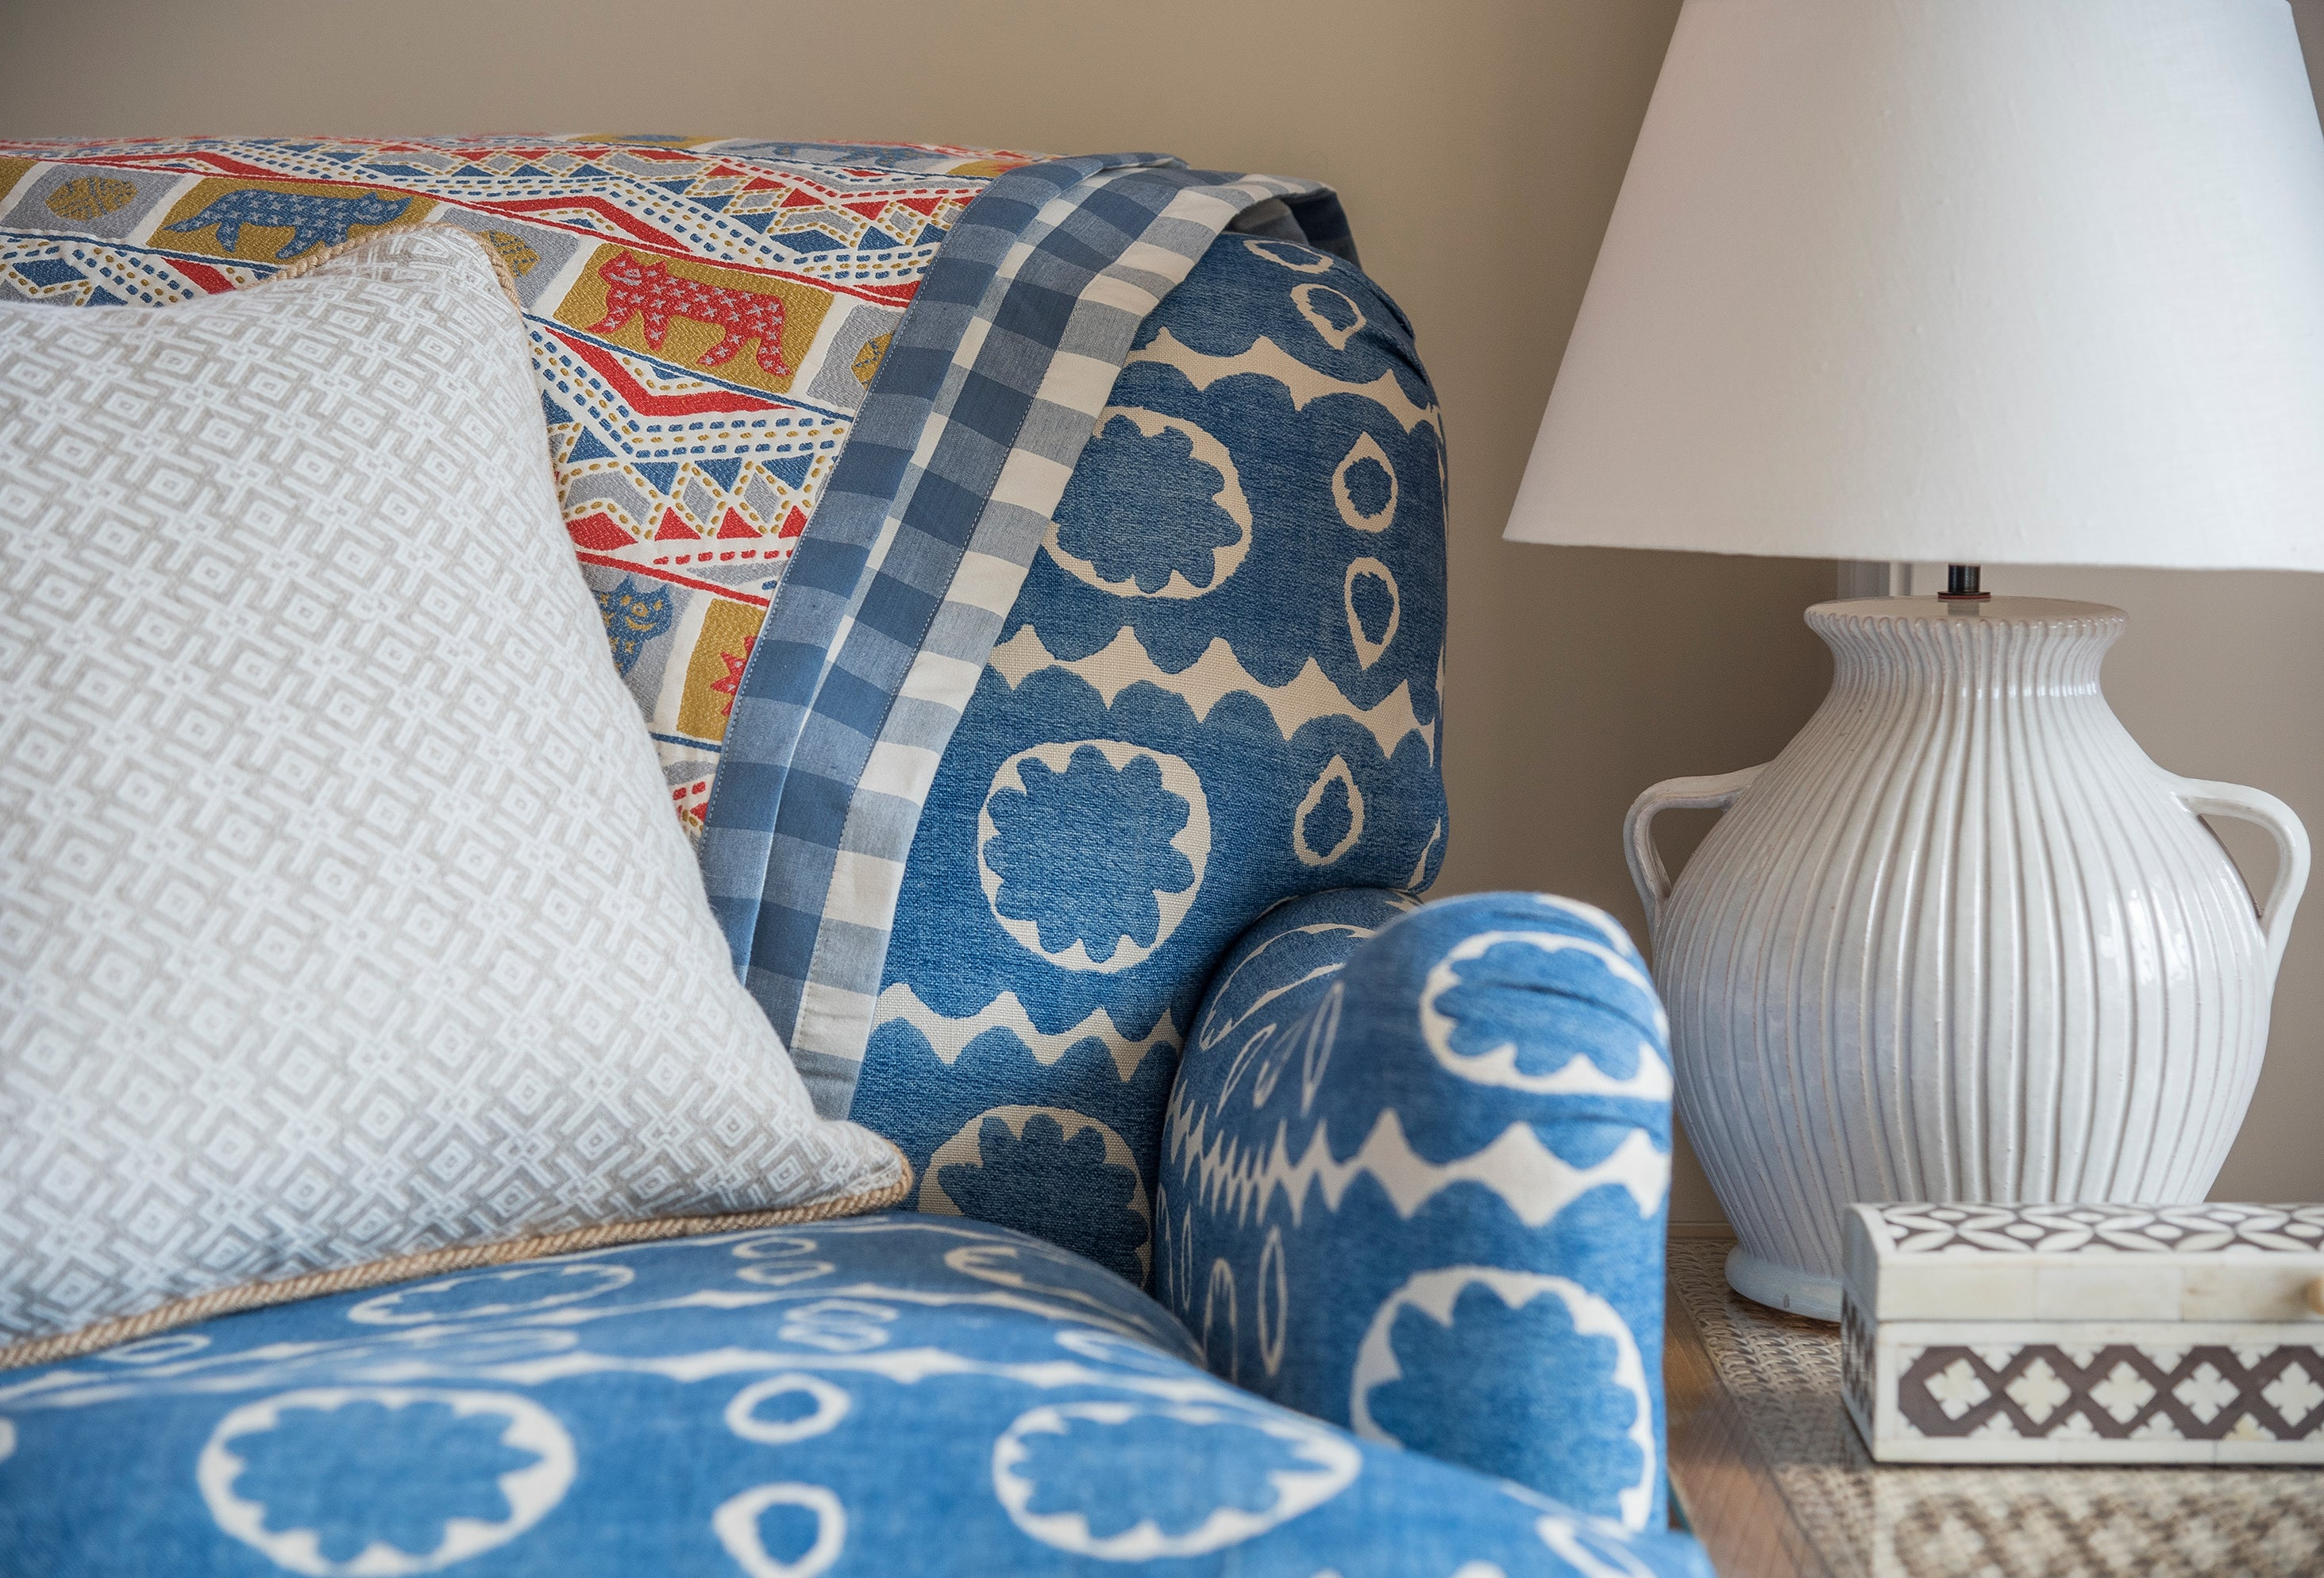 Our reversible tiger tiger throw features a whimsical , guatemalan-inspired design with a blue and white gingham on the other side.